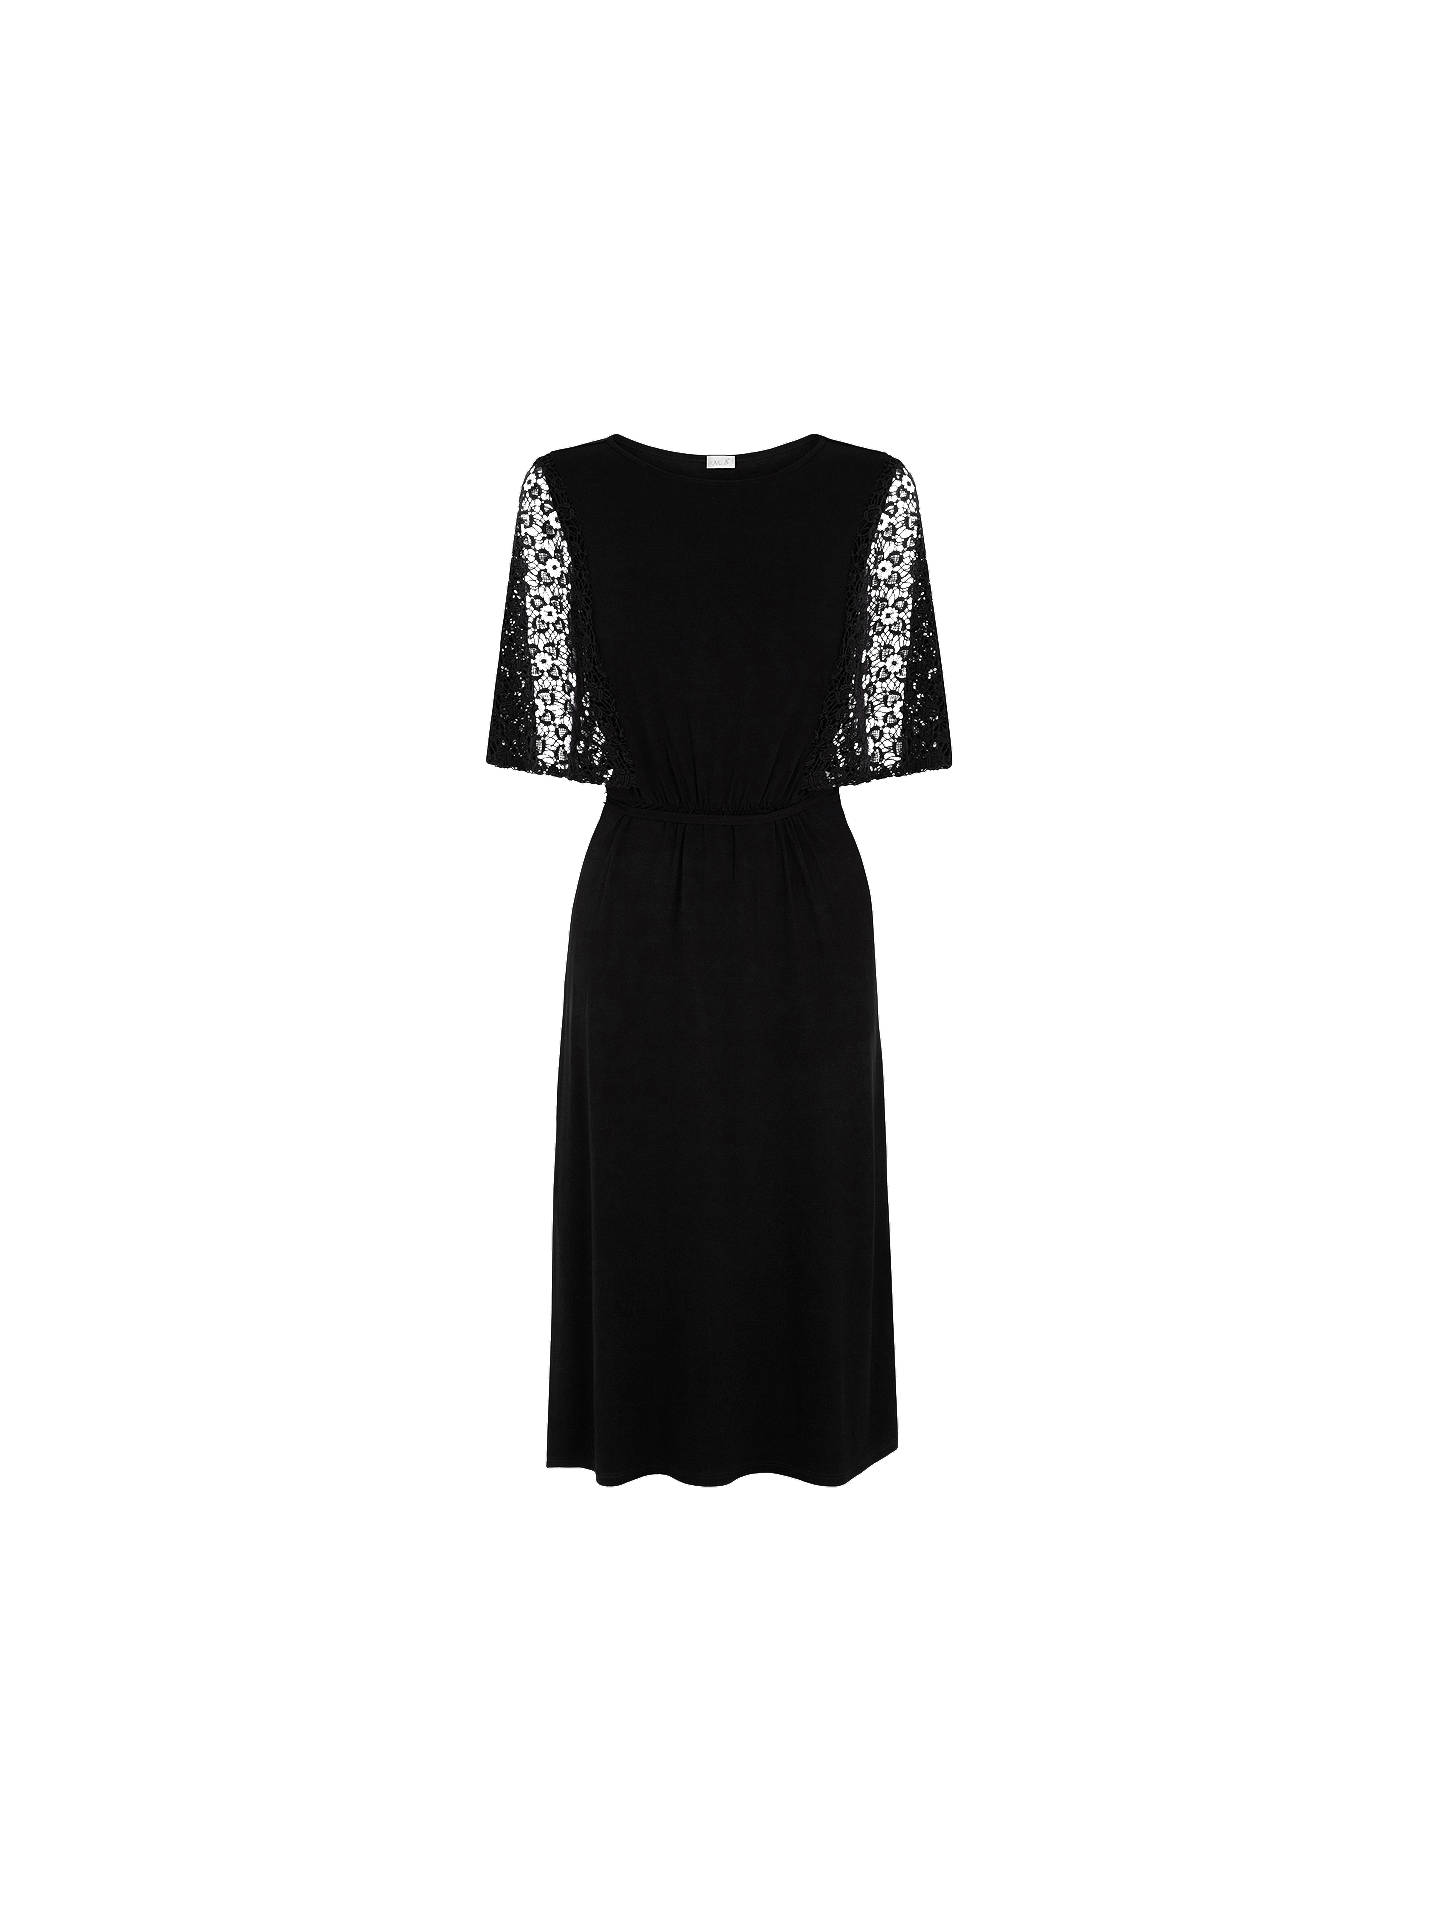 59aad4ab9063 Buy Oasis Lace Sleeve Victoriana Midi Dress, Black, XS Online at  johnlewis.com ...